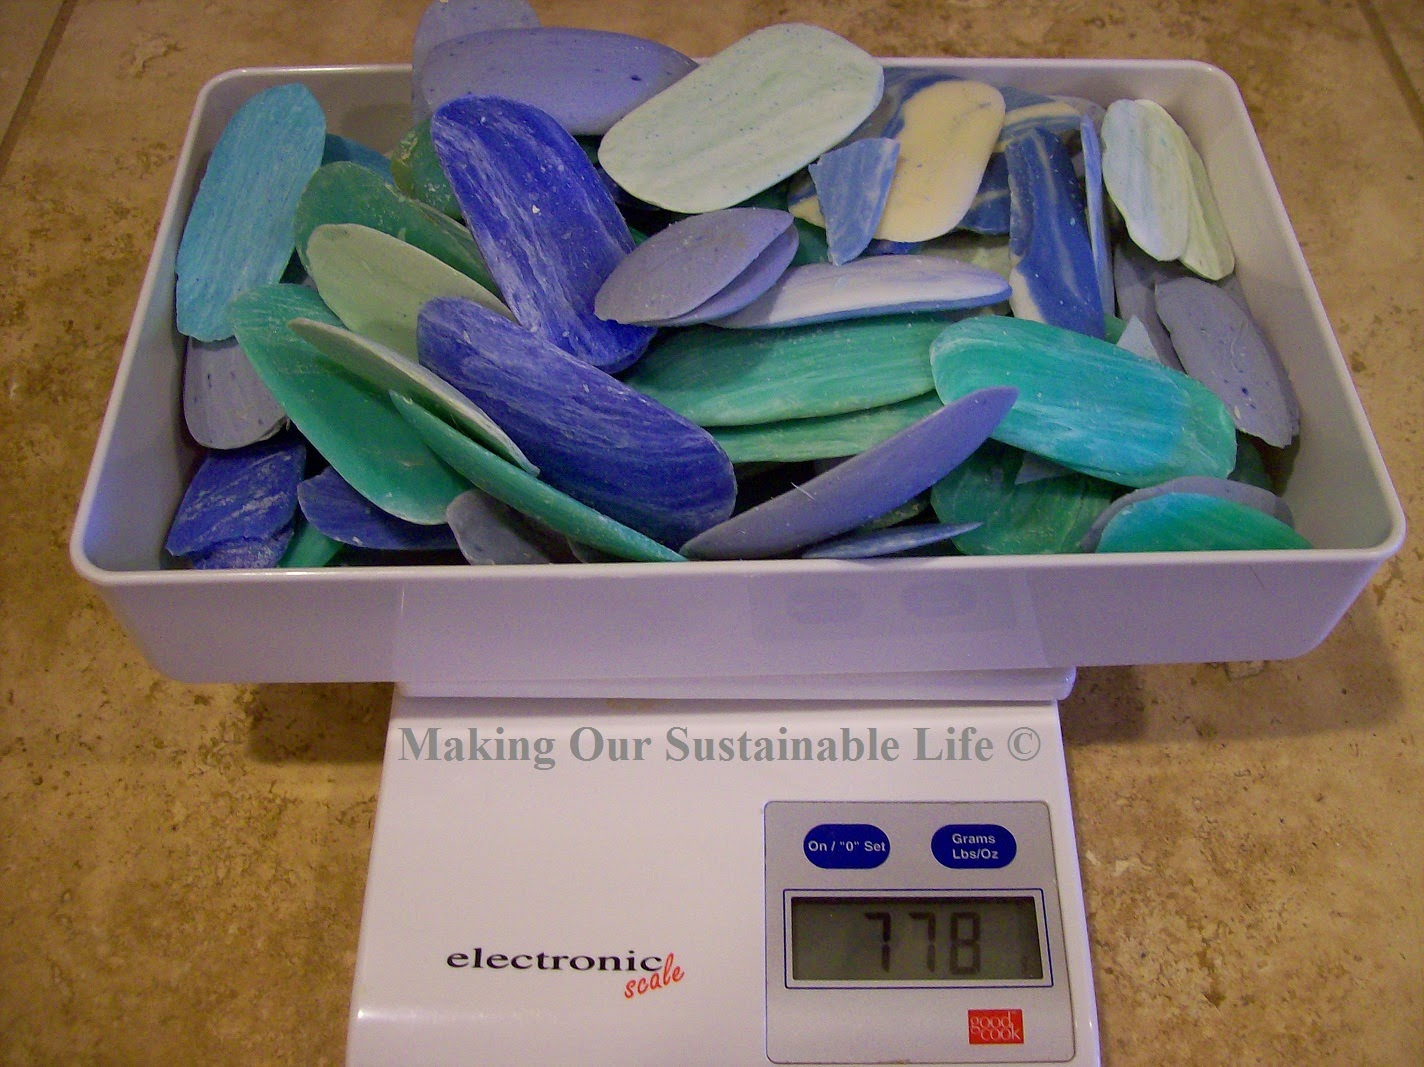 Rebatching Soap, shared by Making Our Sustainable Life